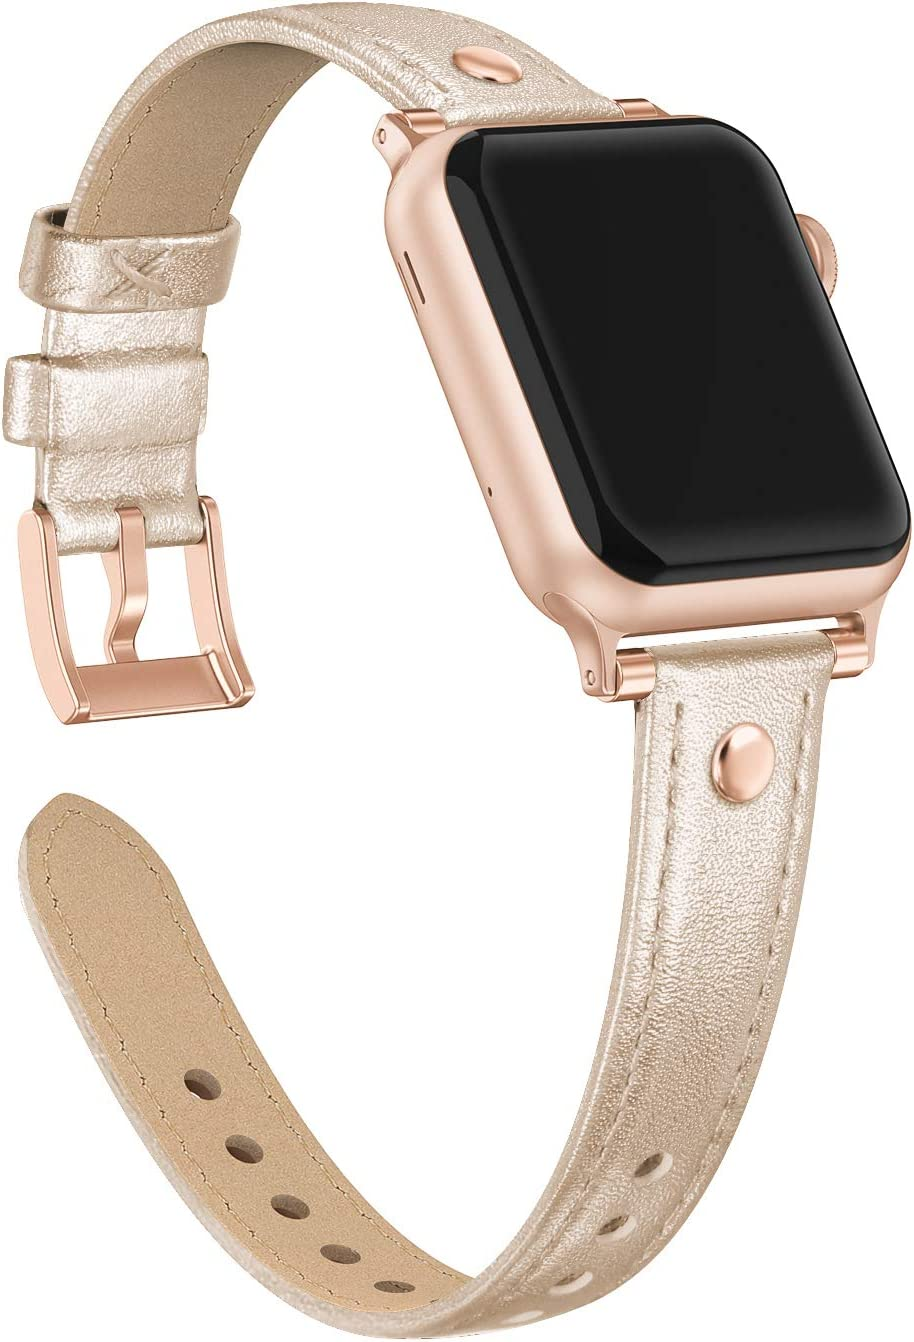 Bandiction Rivets Leather Band Compatible with Apple Watch Band 38mm 40mm, Slim Dual Bead Genuine Leather Band Strap for iWatch 5 4 3 2 1 (Champagne Gold)